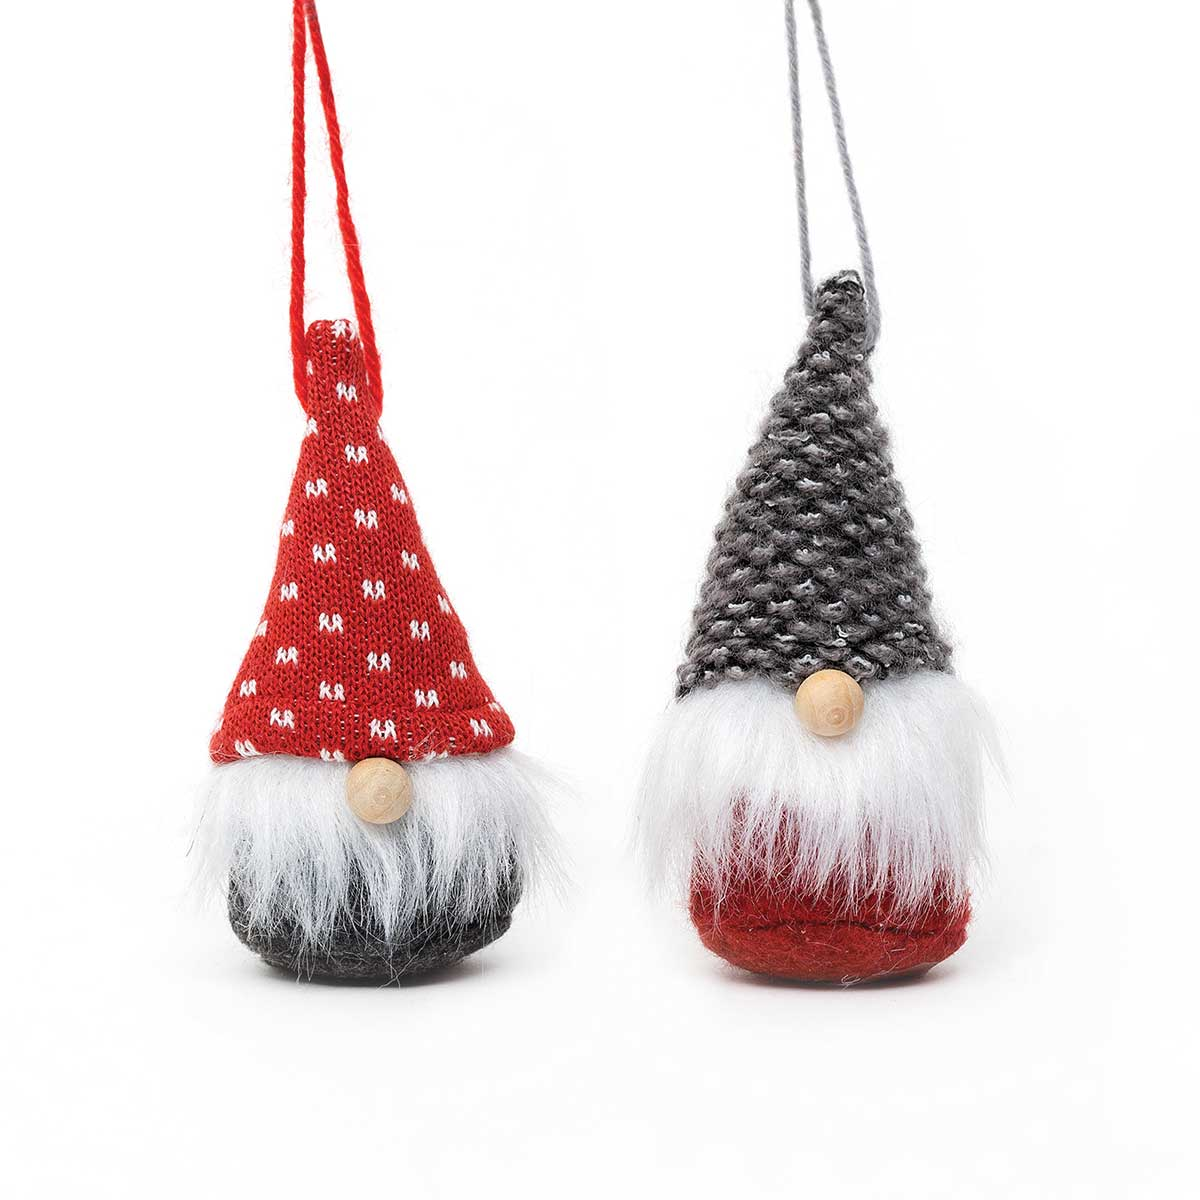 GREY AND RED GNOME ORNAMENT WITH WOOD